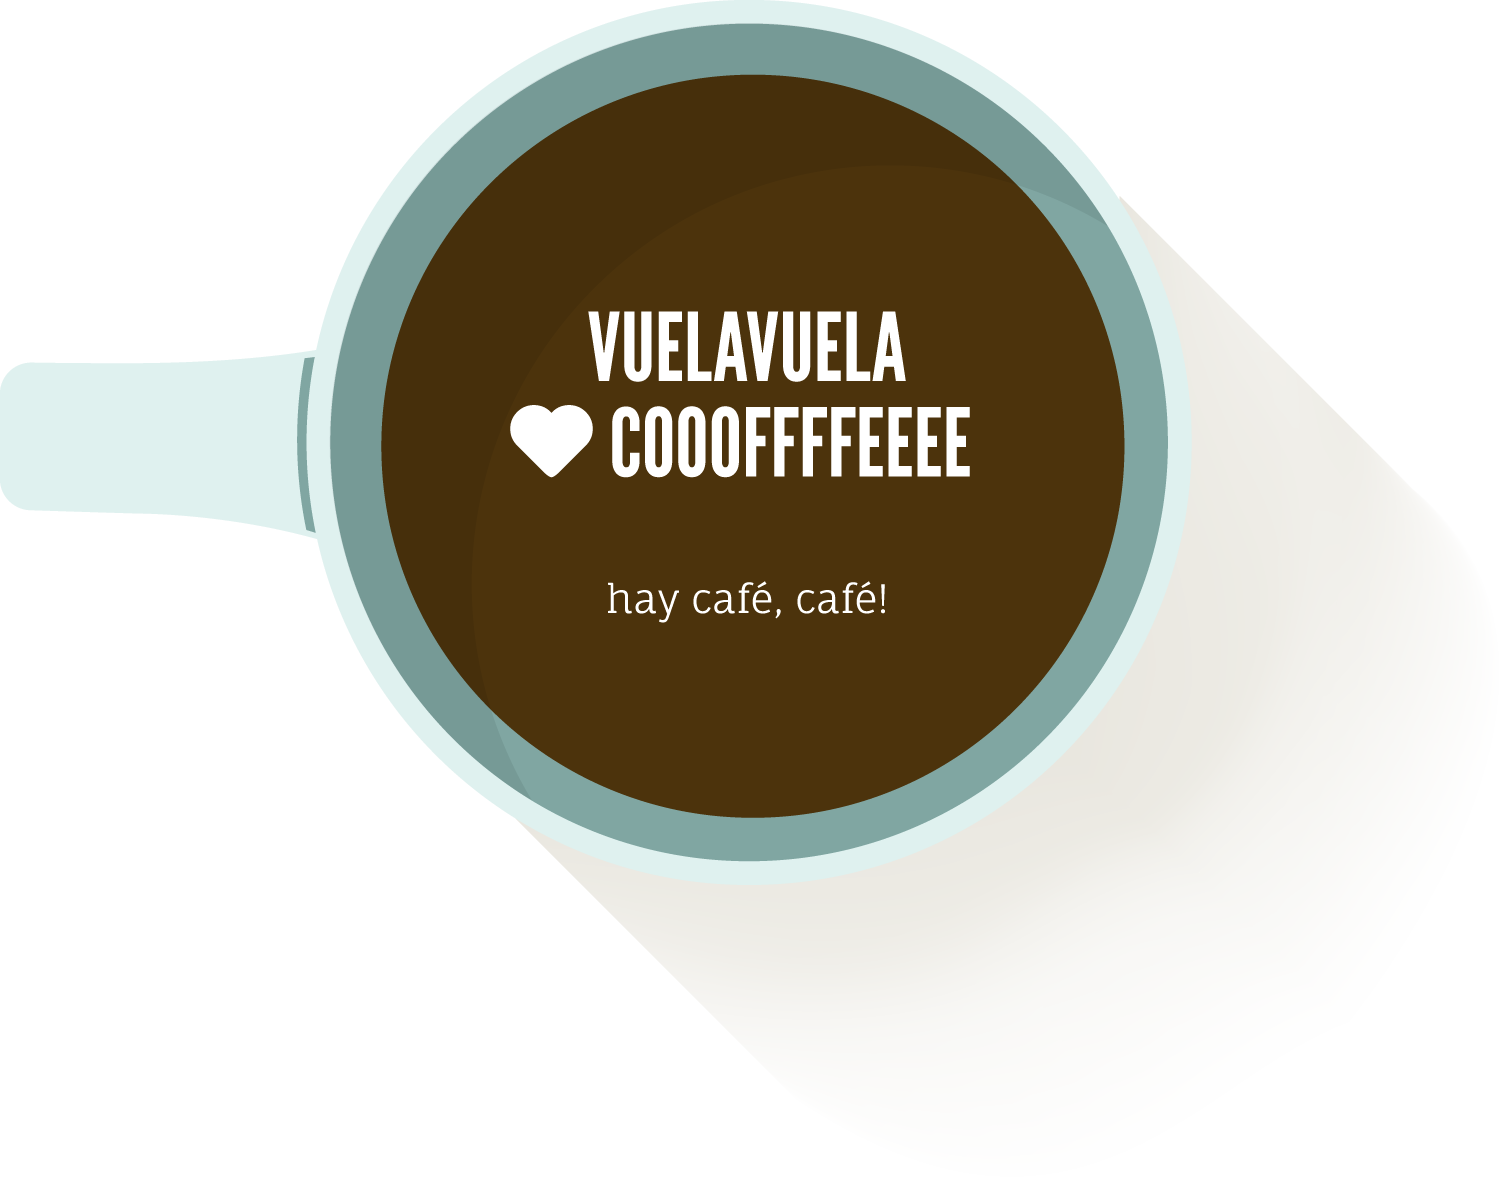 A relaxing cup of coffee from VuelaVuela